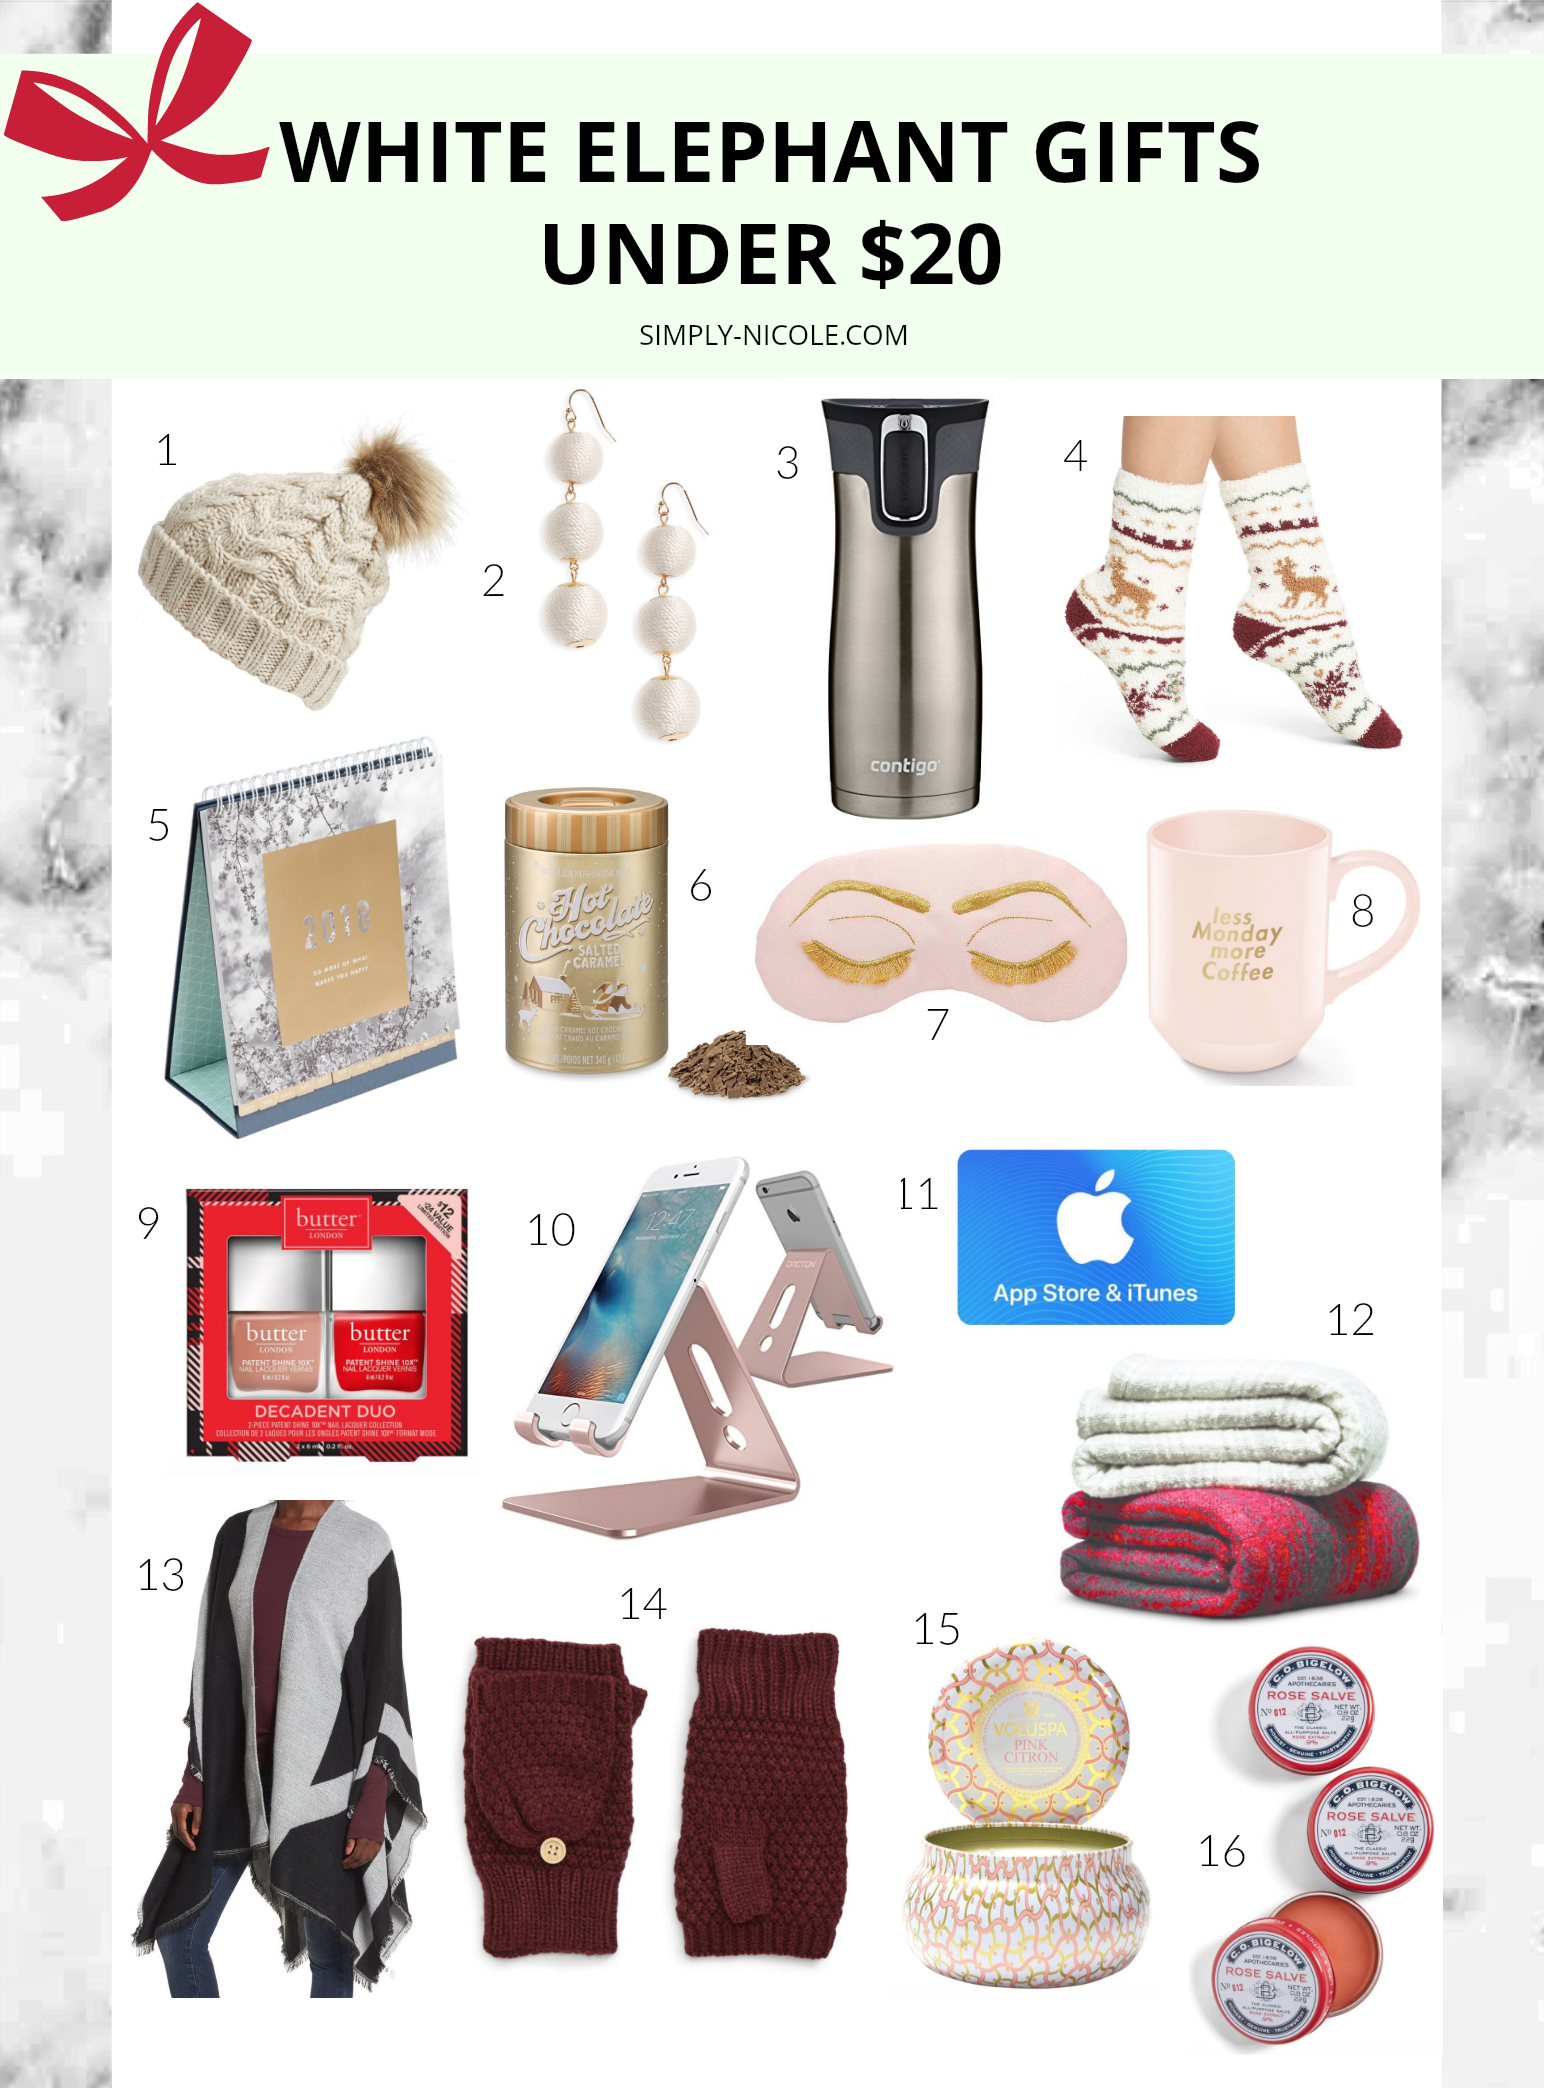 White Elephant Gifts Under $20